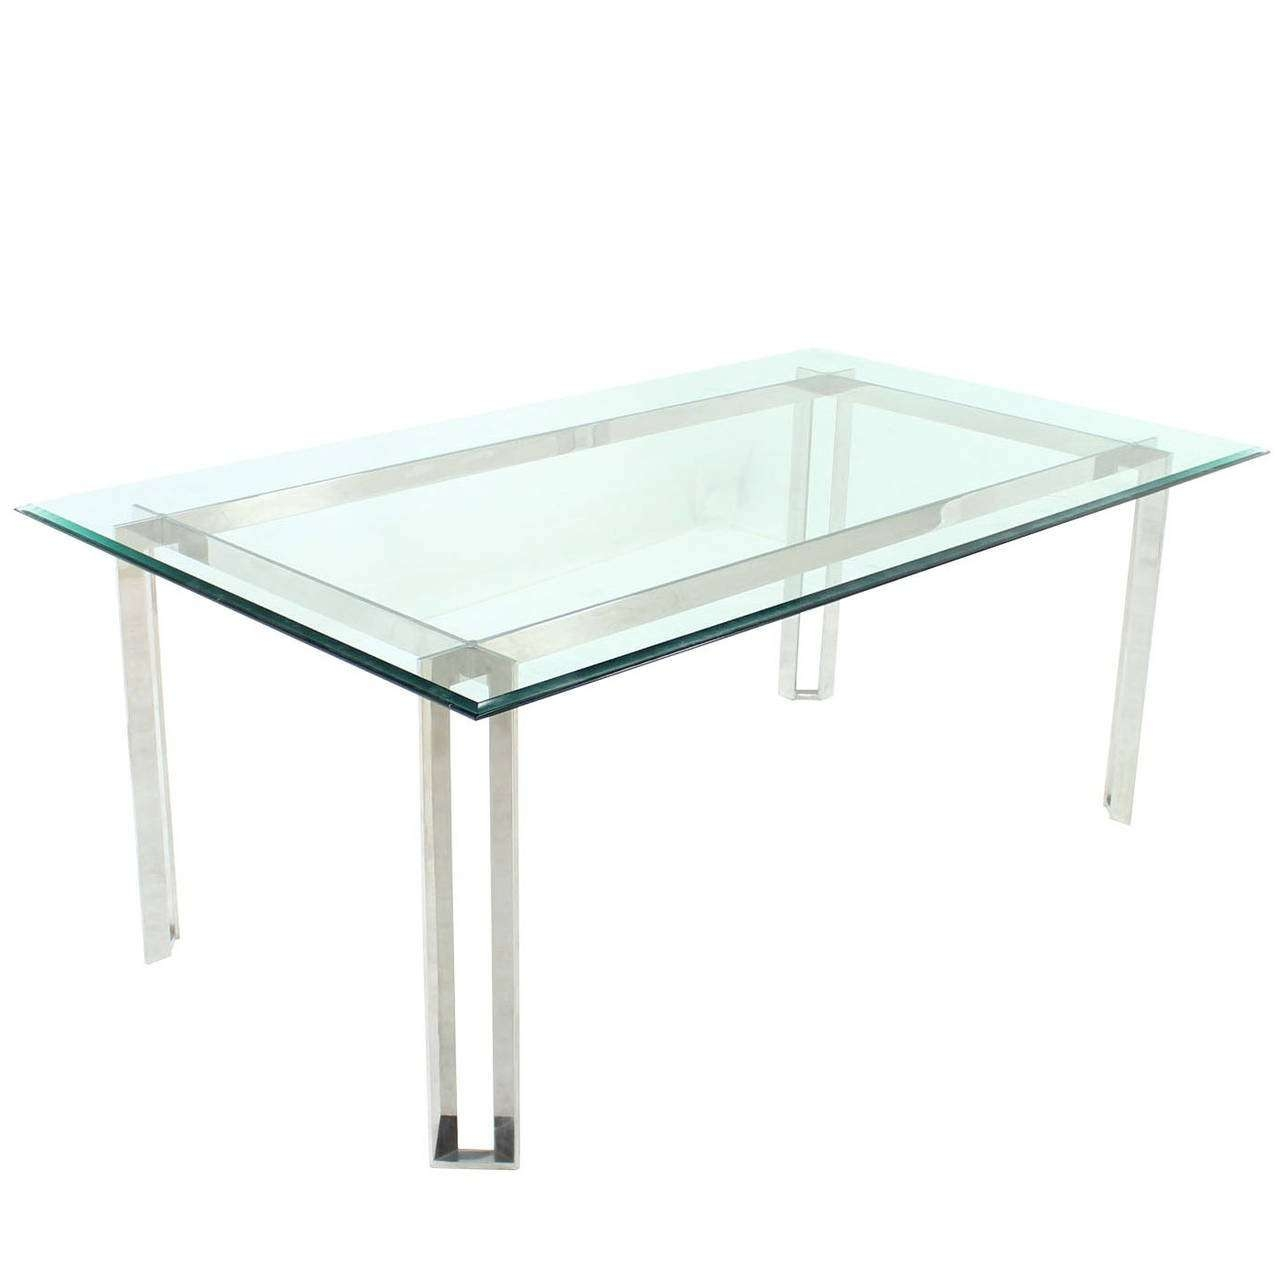 Polished Stainless Steel And Thick Glass Top Dining Room Table For Pertaining To Well Liked Thick Glass Coffee Table (View 17 of 20)